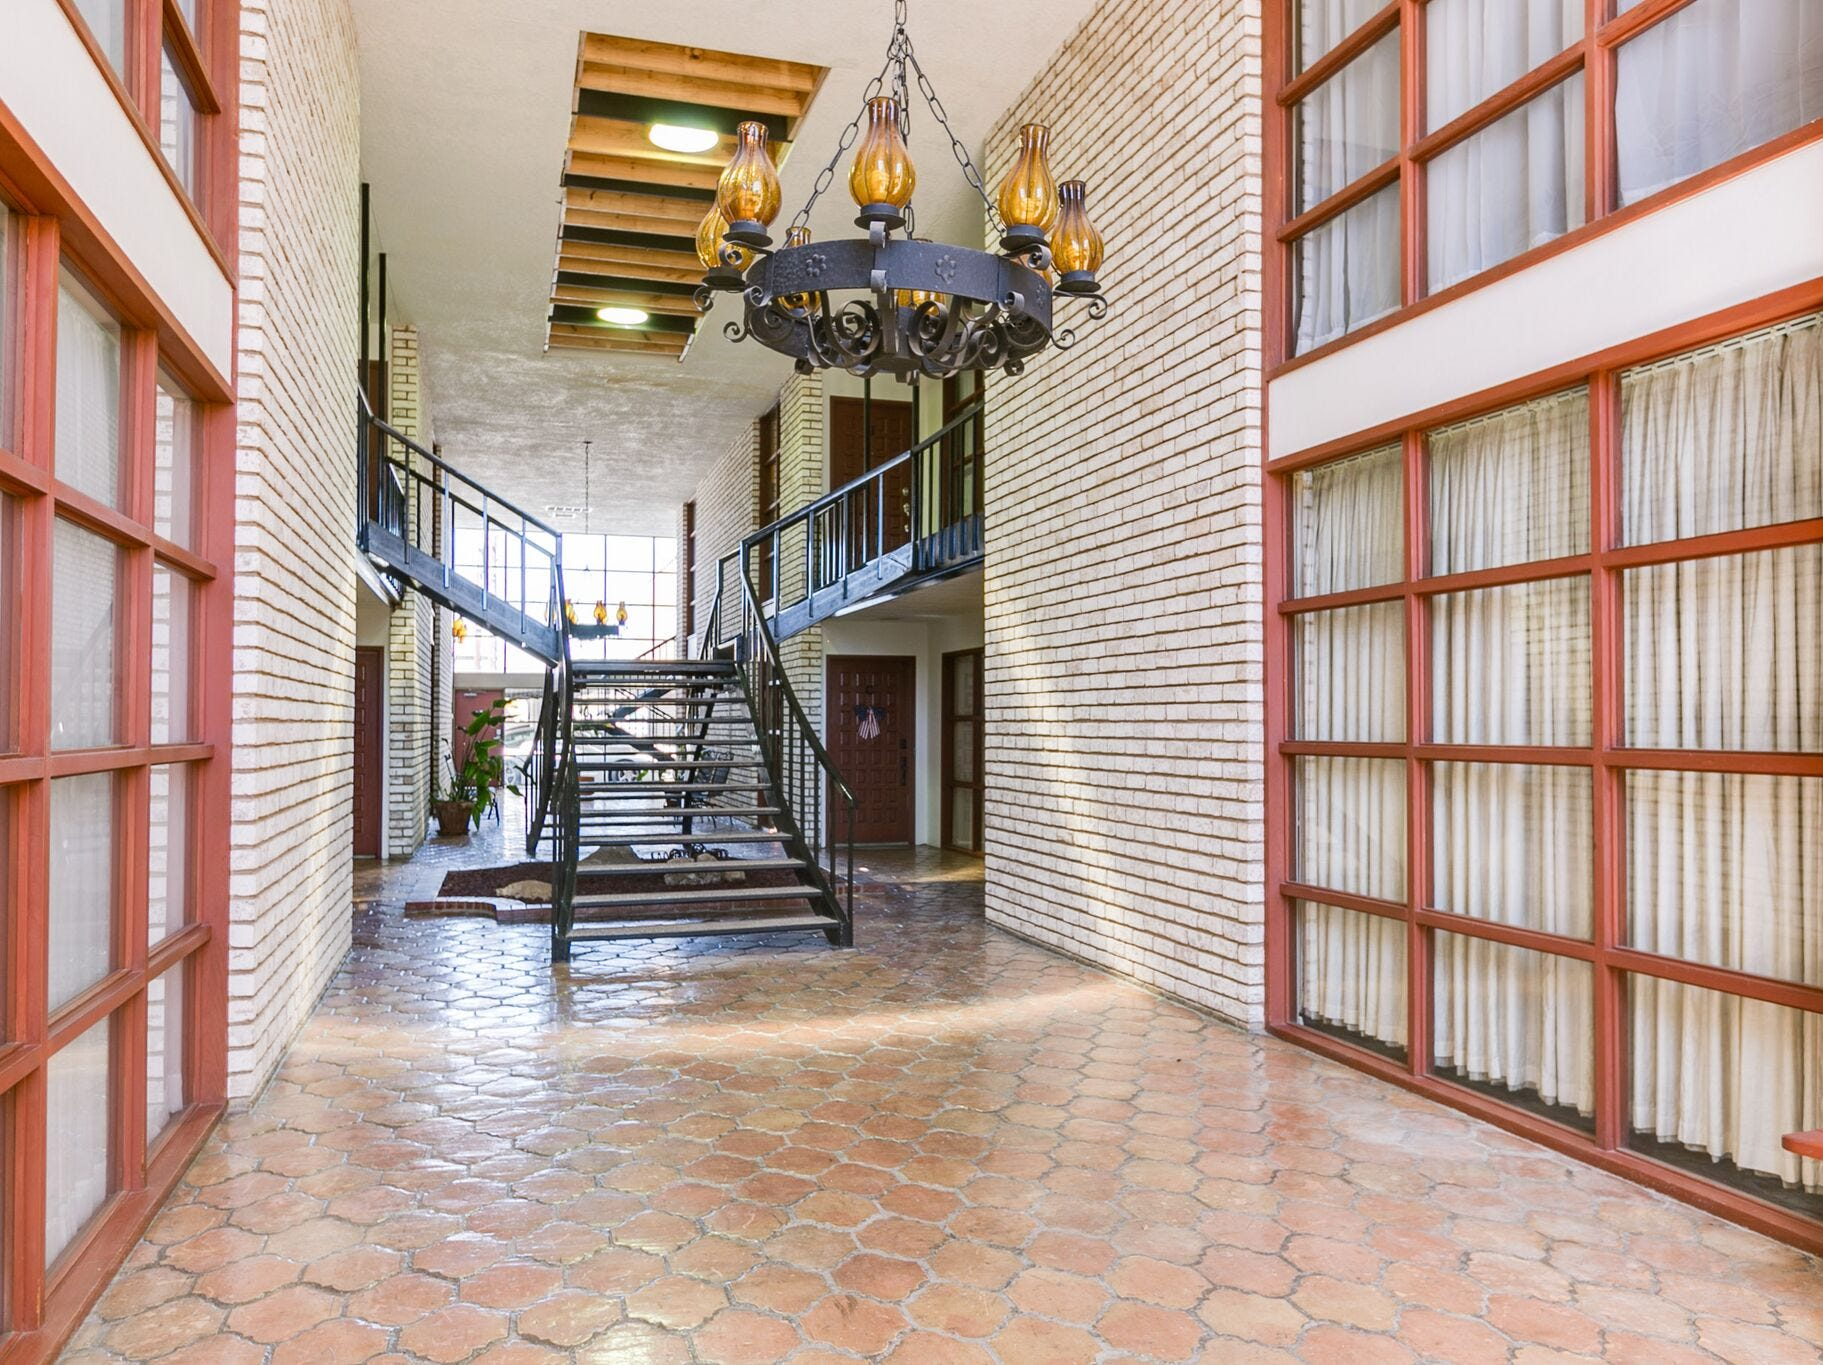 The interior hallway of the condos at 220 Twohig Ave. reveales a spacious and grand entrance.